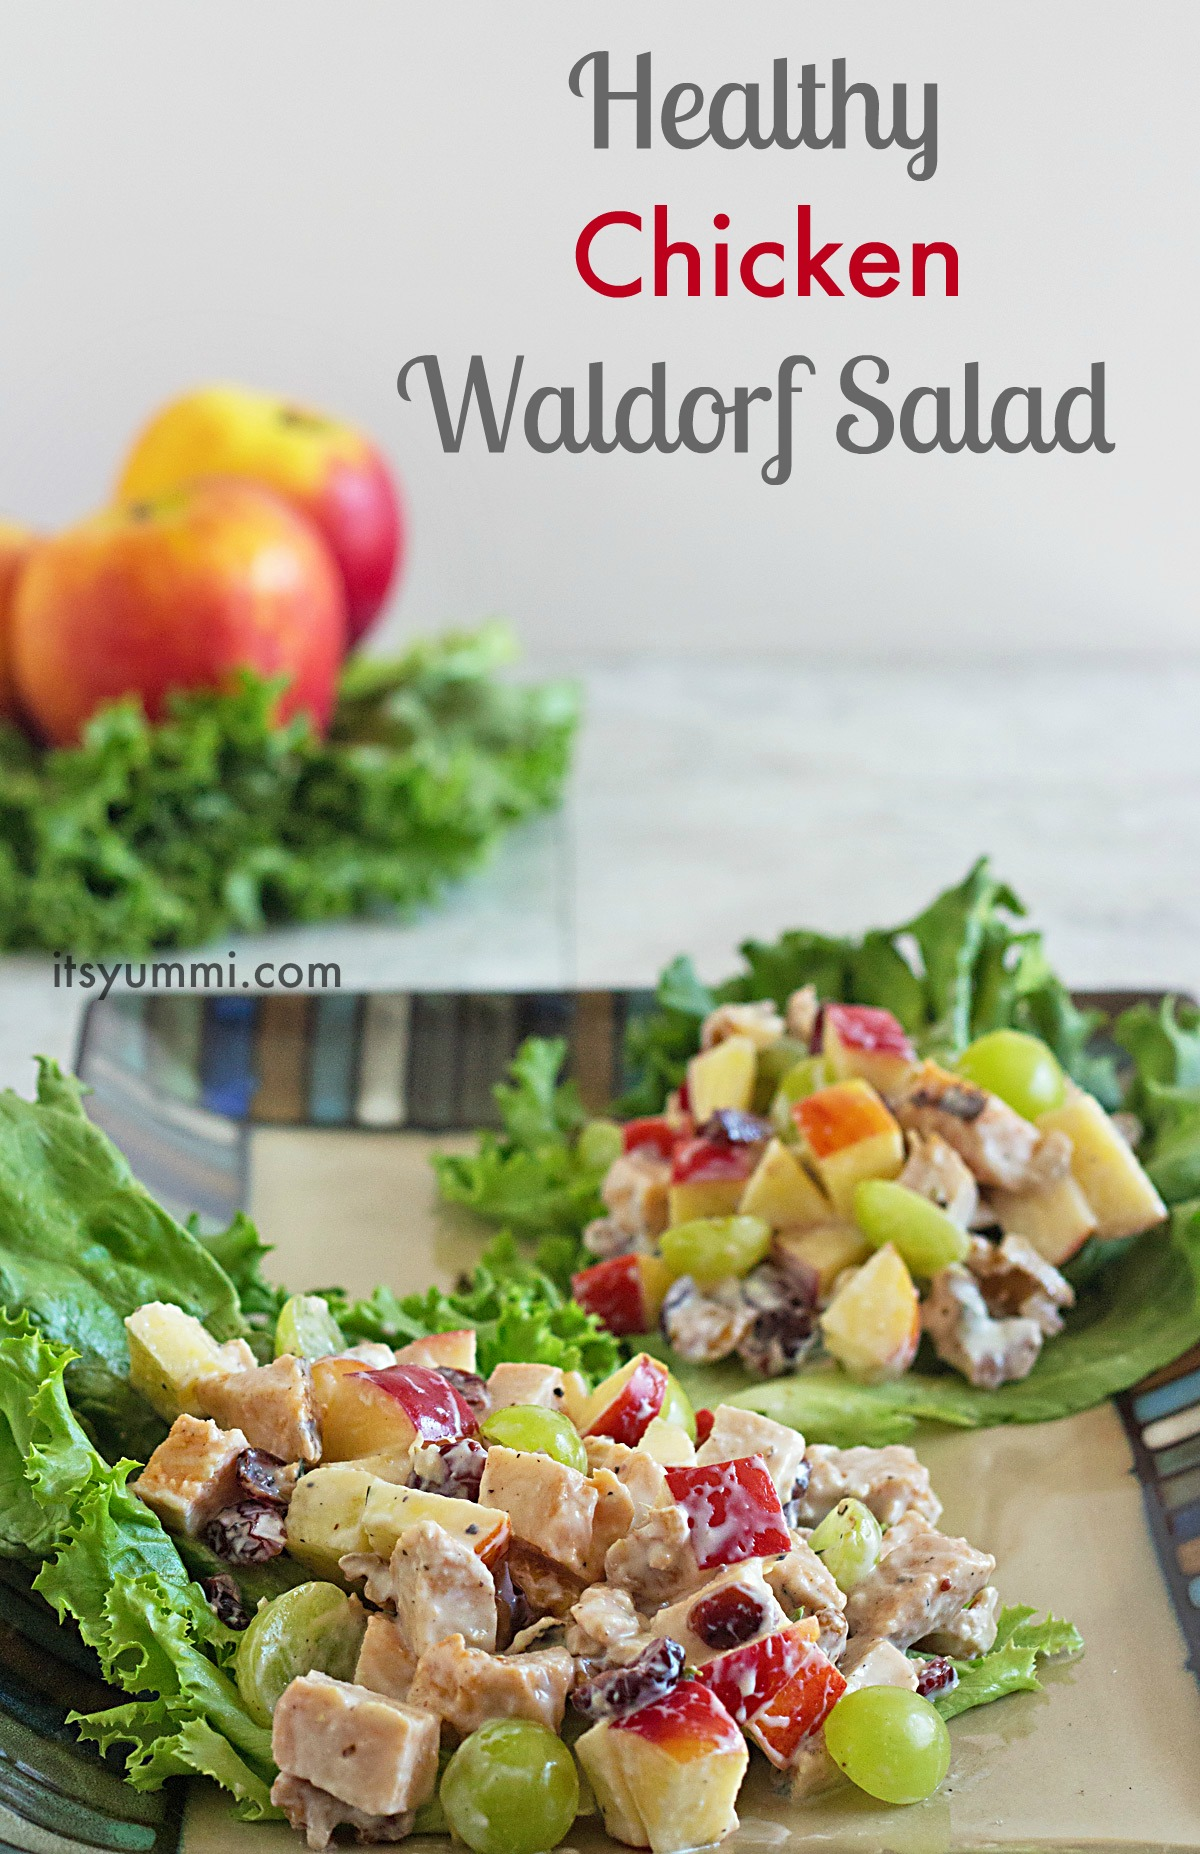 Healthy Chicken Waldorf Salad from ItsYummi.com!